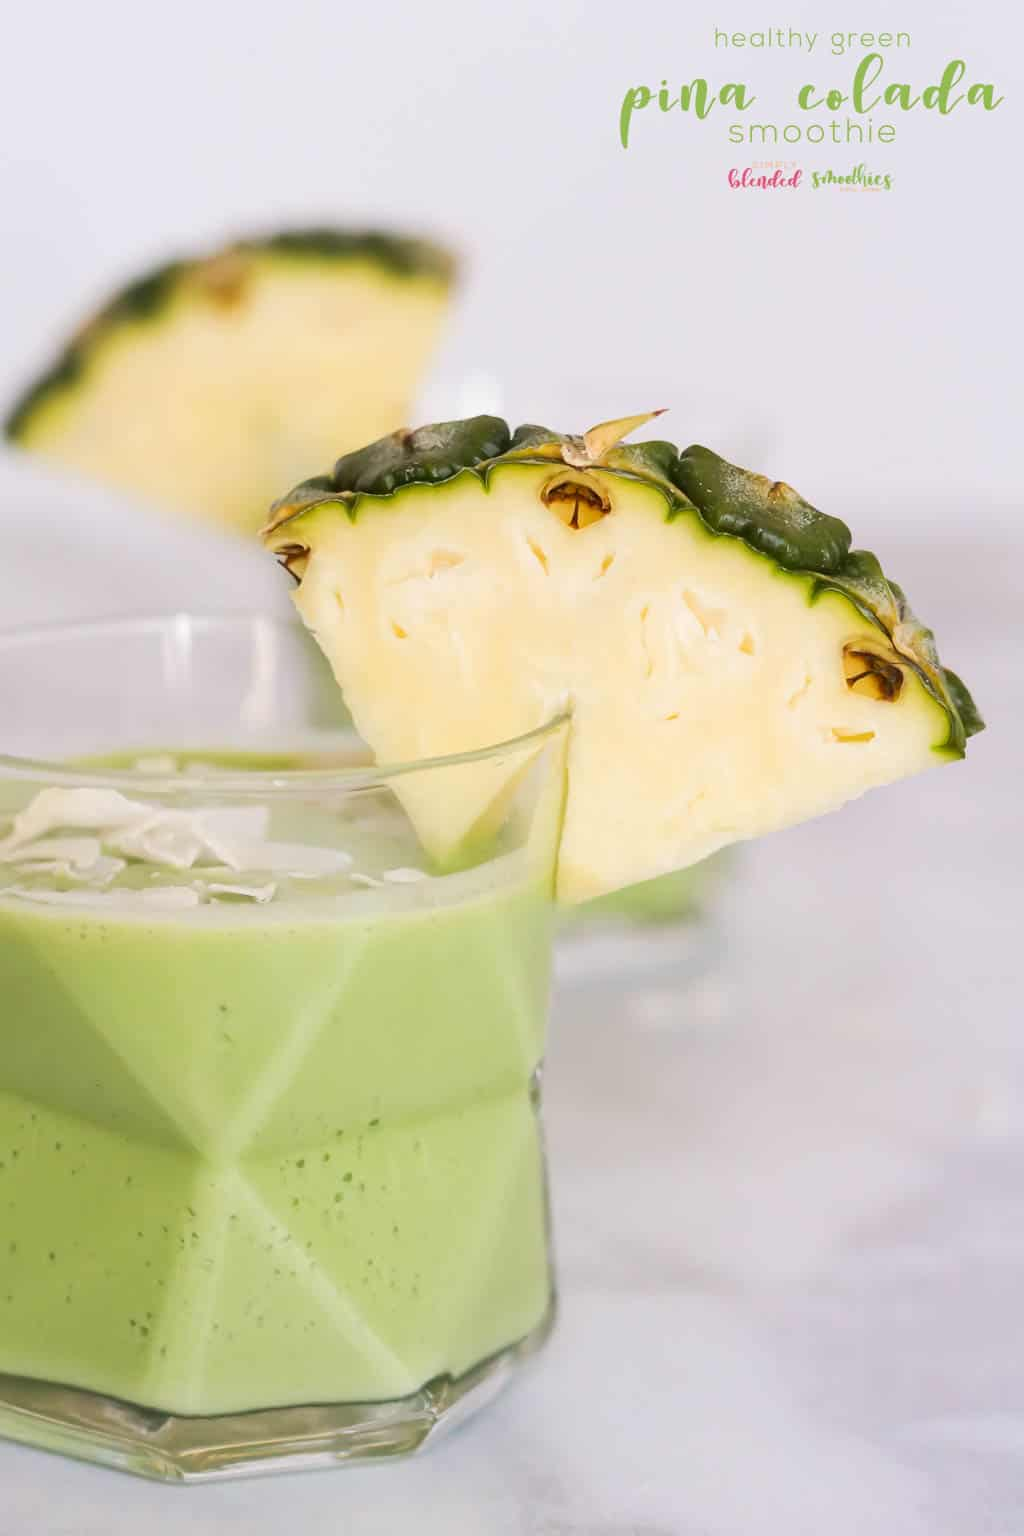 This Green Pina Collada recipe is a healthy alternative to a pina colada and is full of healthy spinach pineapple and other delicious ingredients